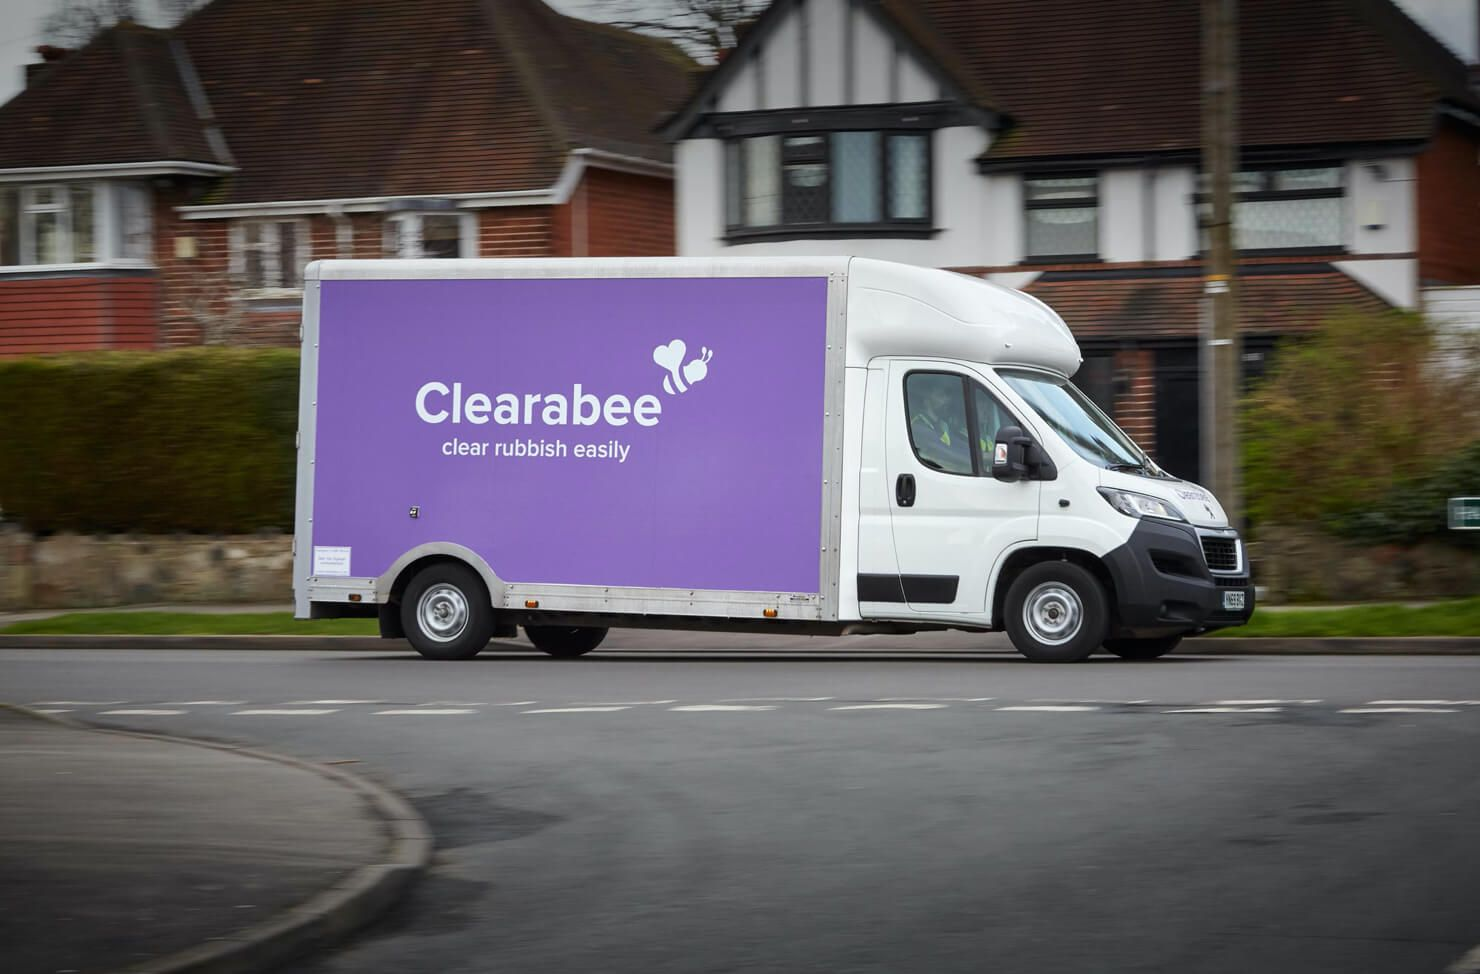 Clearabee 'Man and Van' service